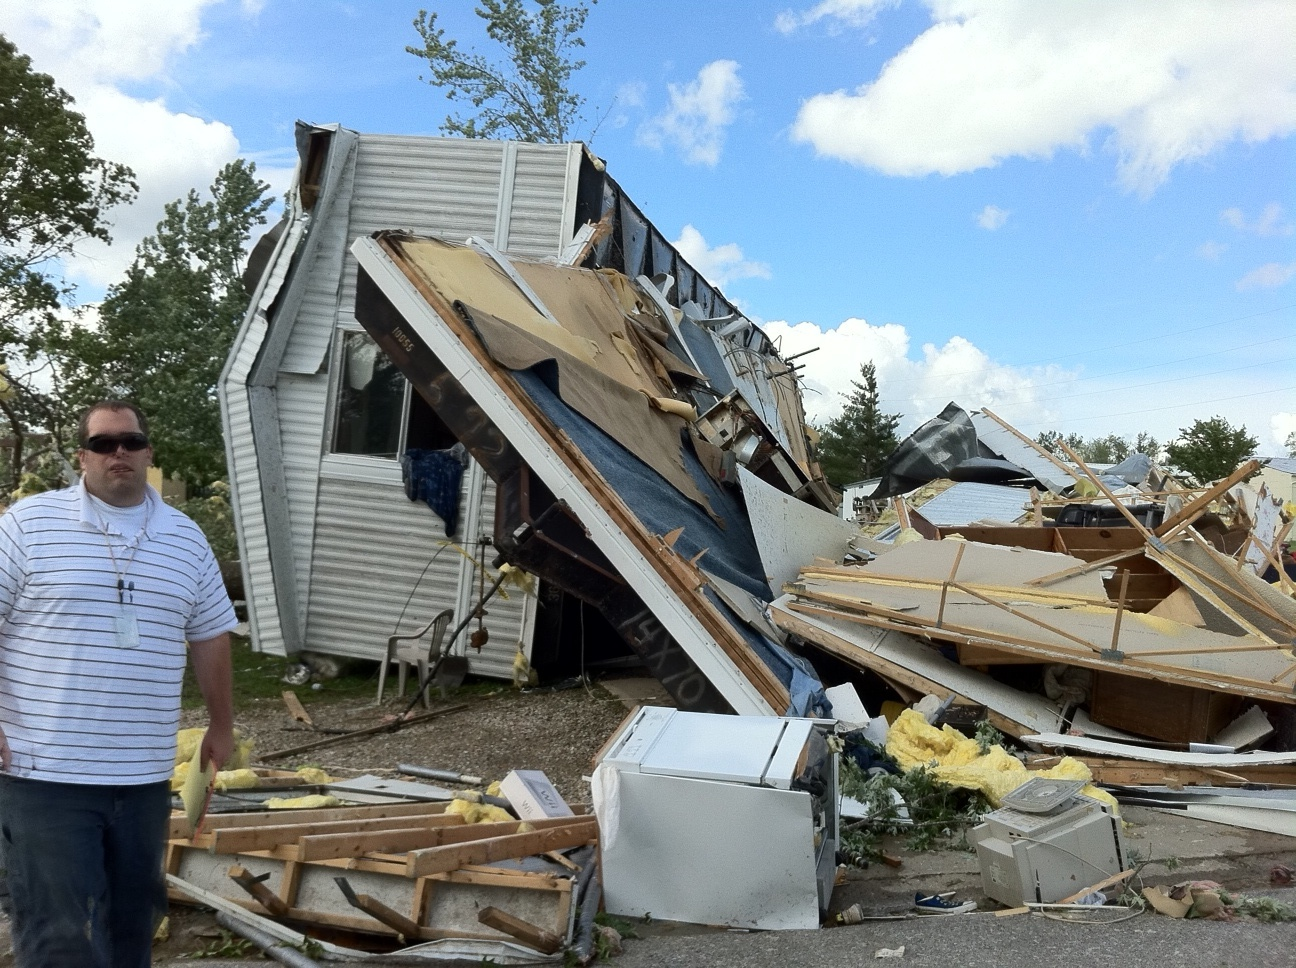 Meteorologist Chris Bowman standing by damaged mobile home